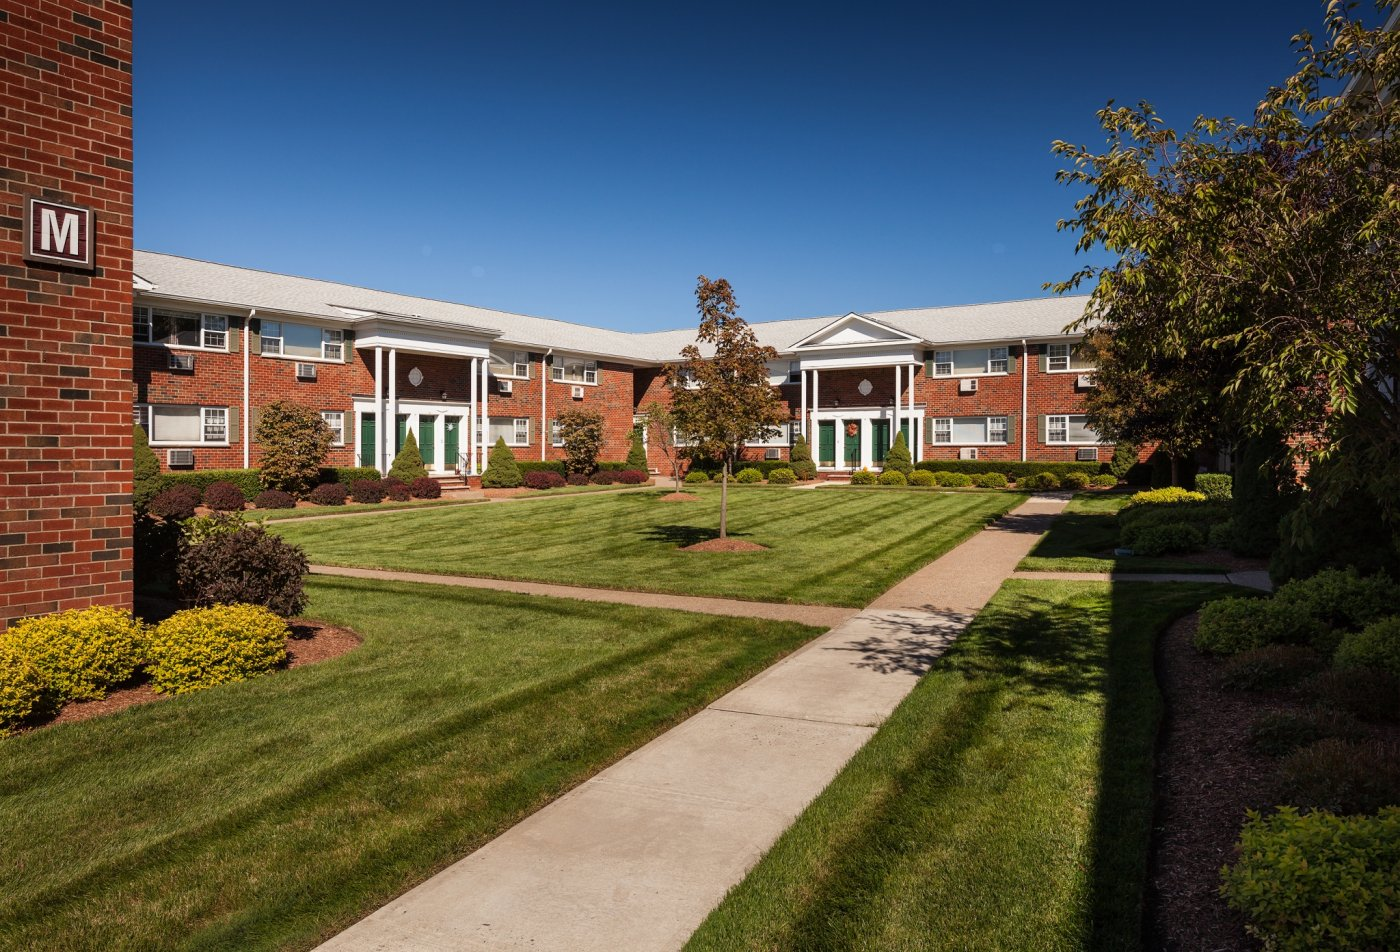 SADDLE BROOK APARTMENTS